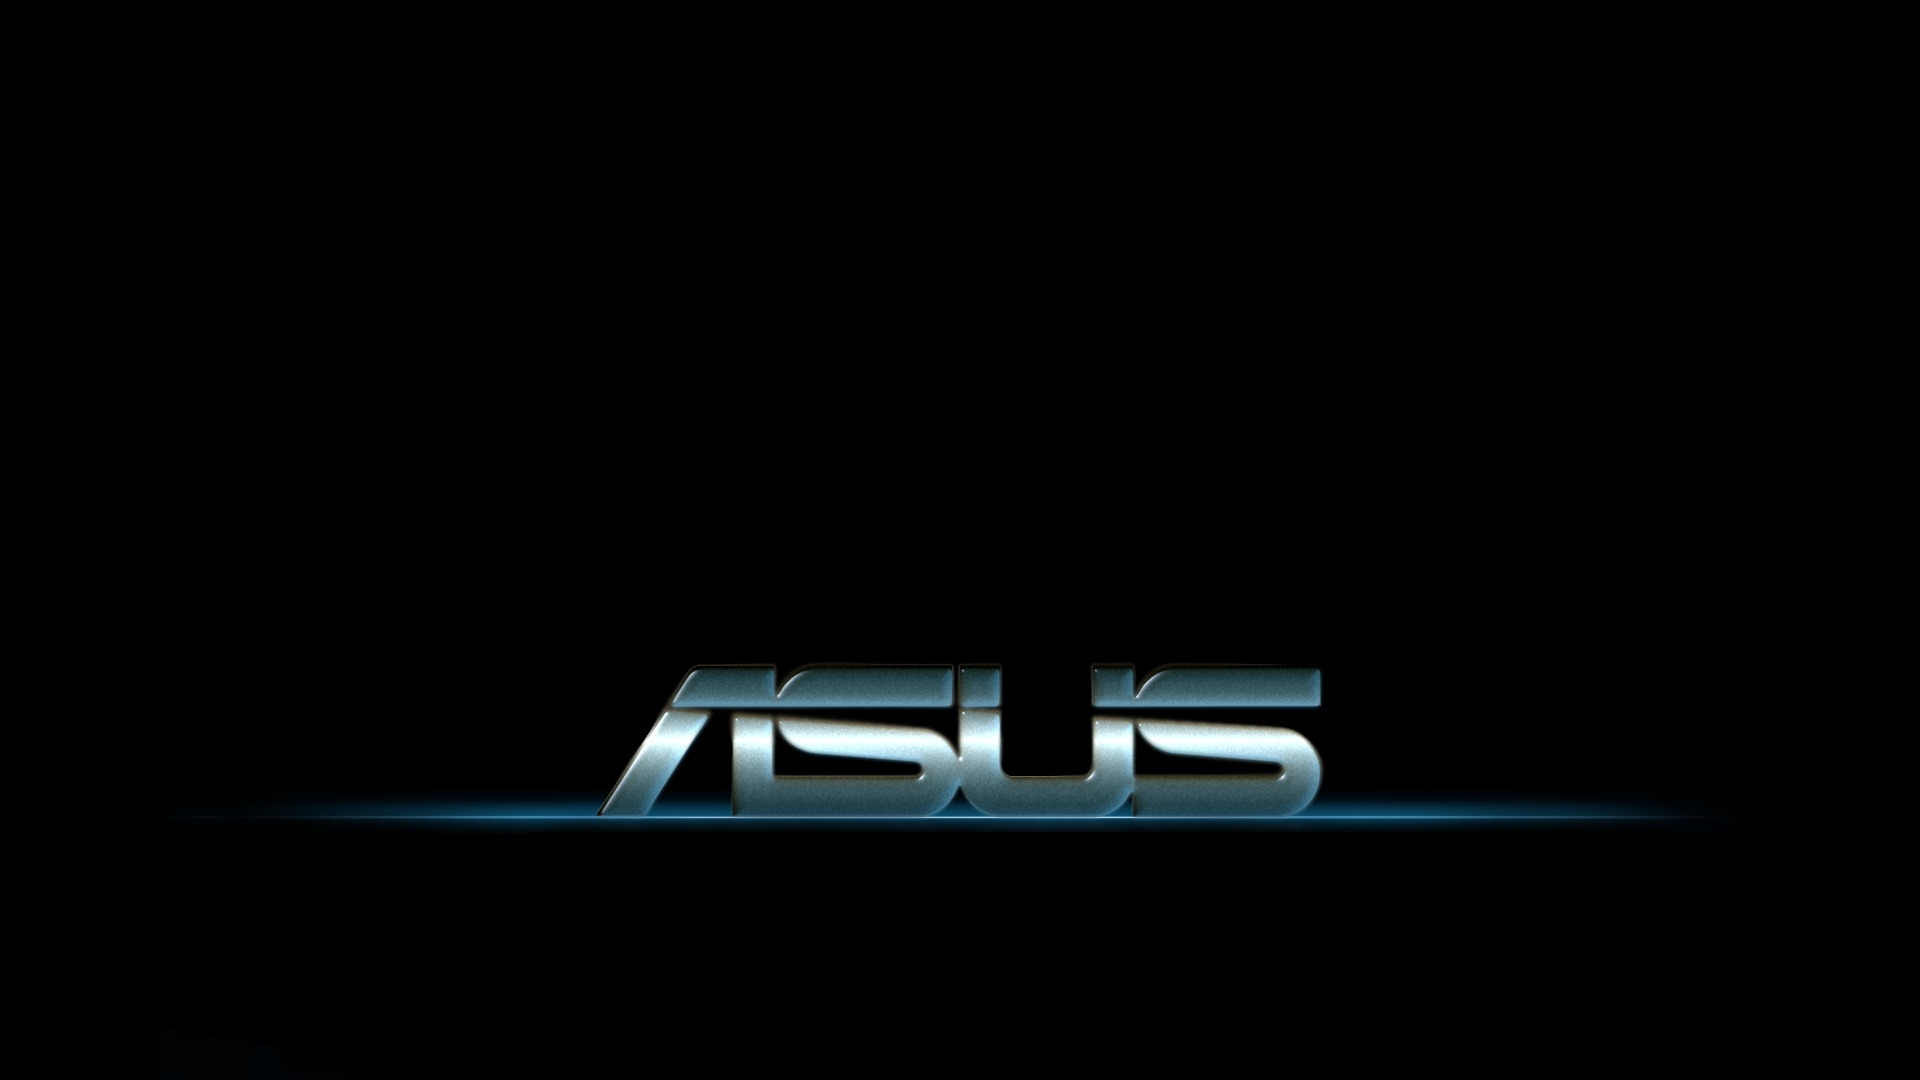 Wallpapers Download 1920x1080 asus computer FAT ASUS Wallpaper 1920x1080